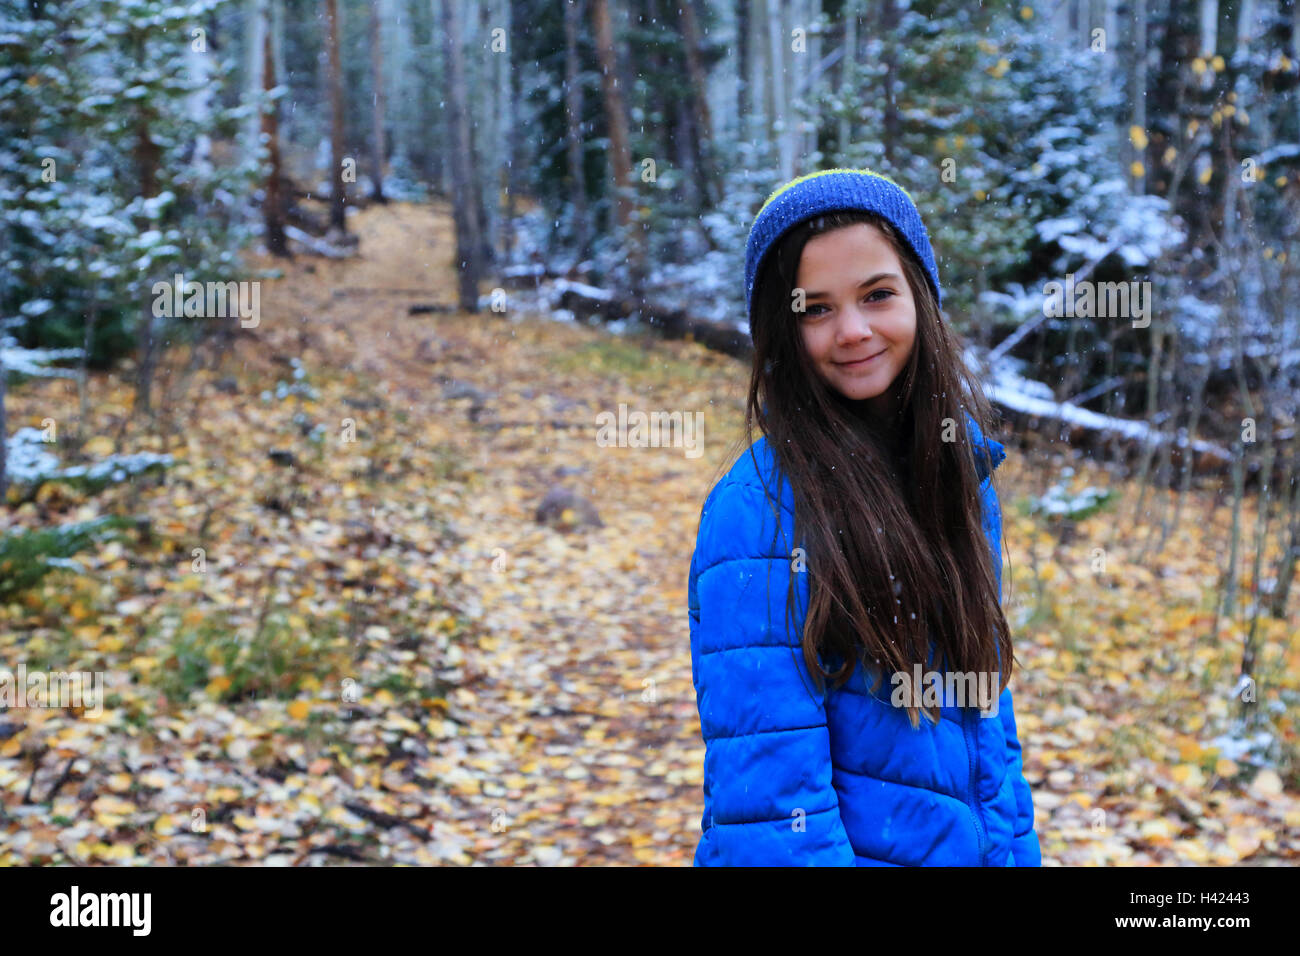 A brunette tween girl wearing winter clothing hikes in the woods. She is wearing a blue hat and a blue coat and - Stock Image